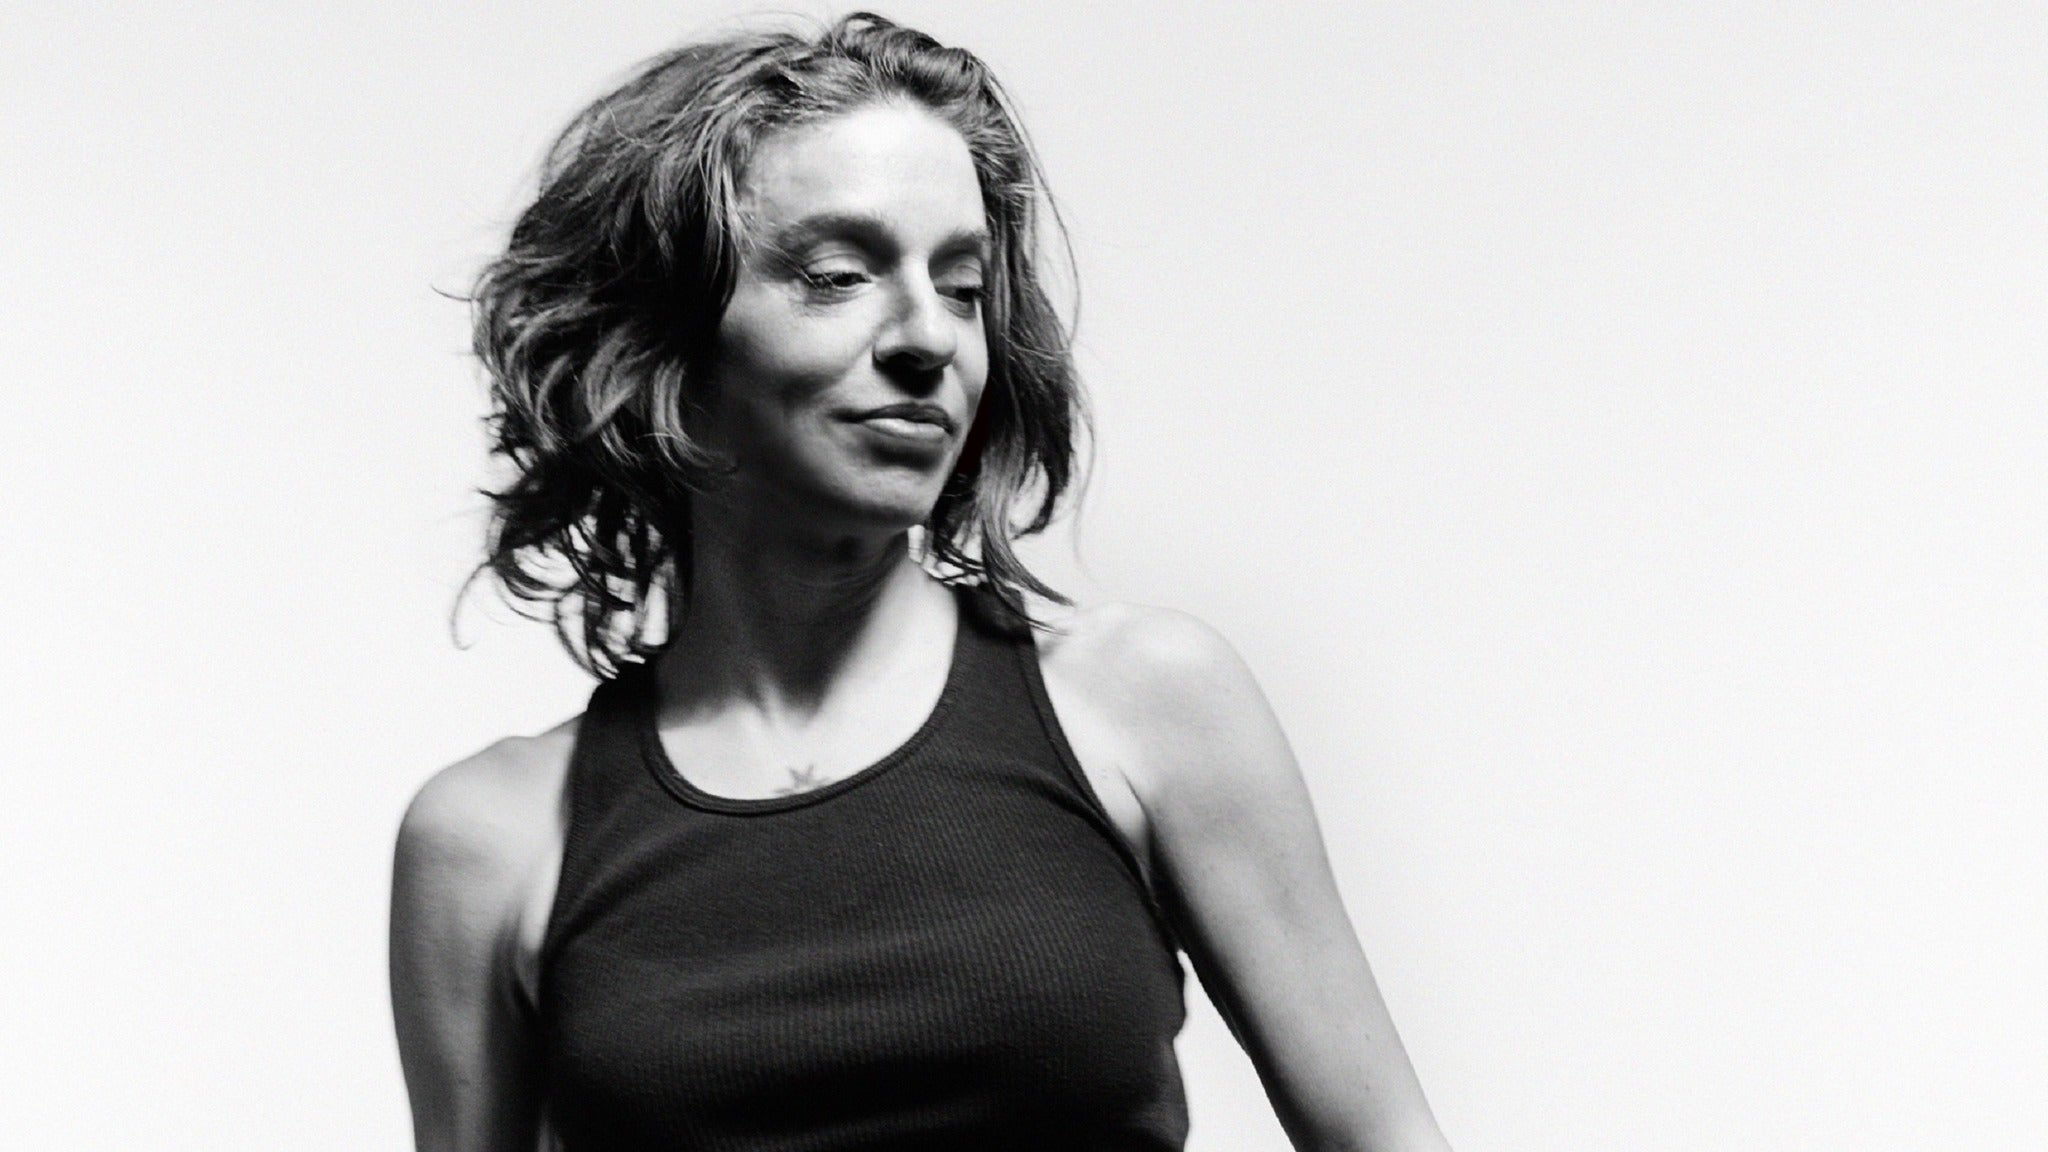 Ani DiFranco at 20 Monroe Live